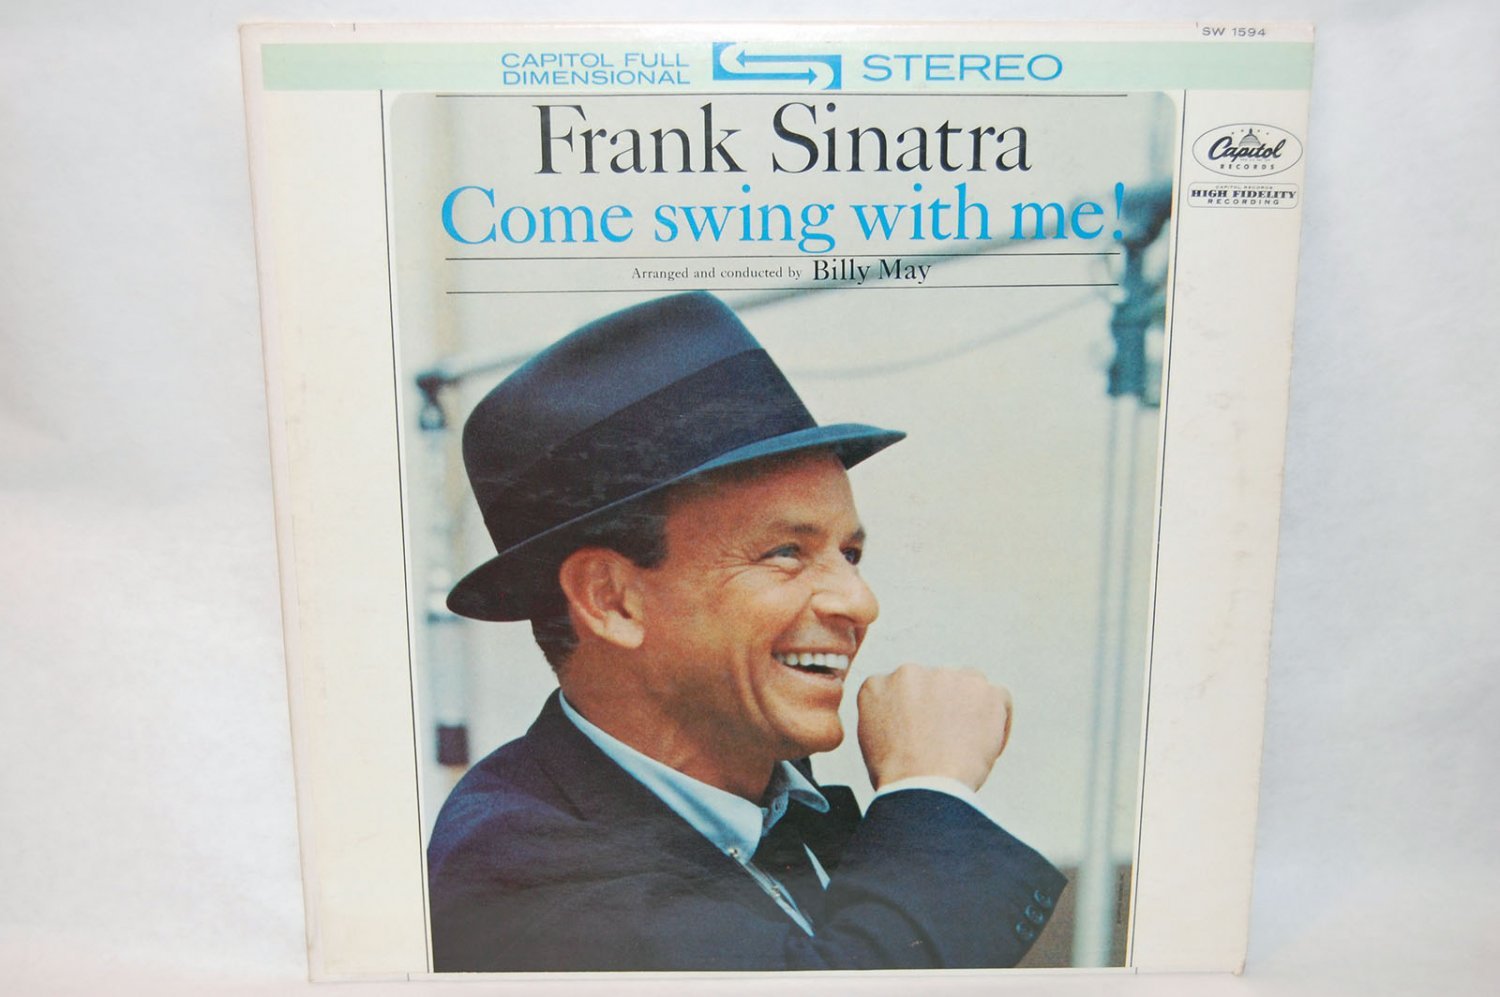 "FRANK SINATRA Come Swing With Me 12"" Vinyl LP Capitol SW-1594"